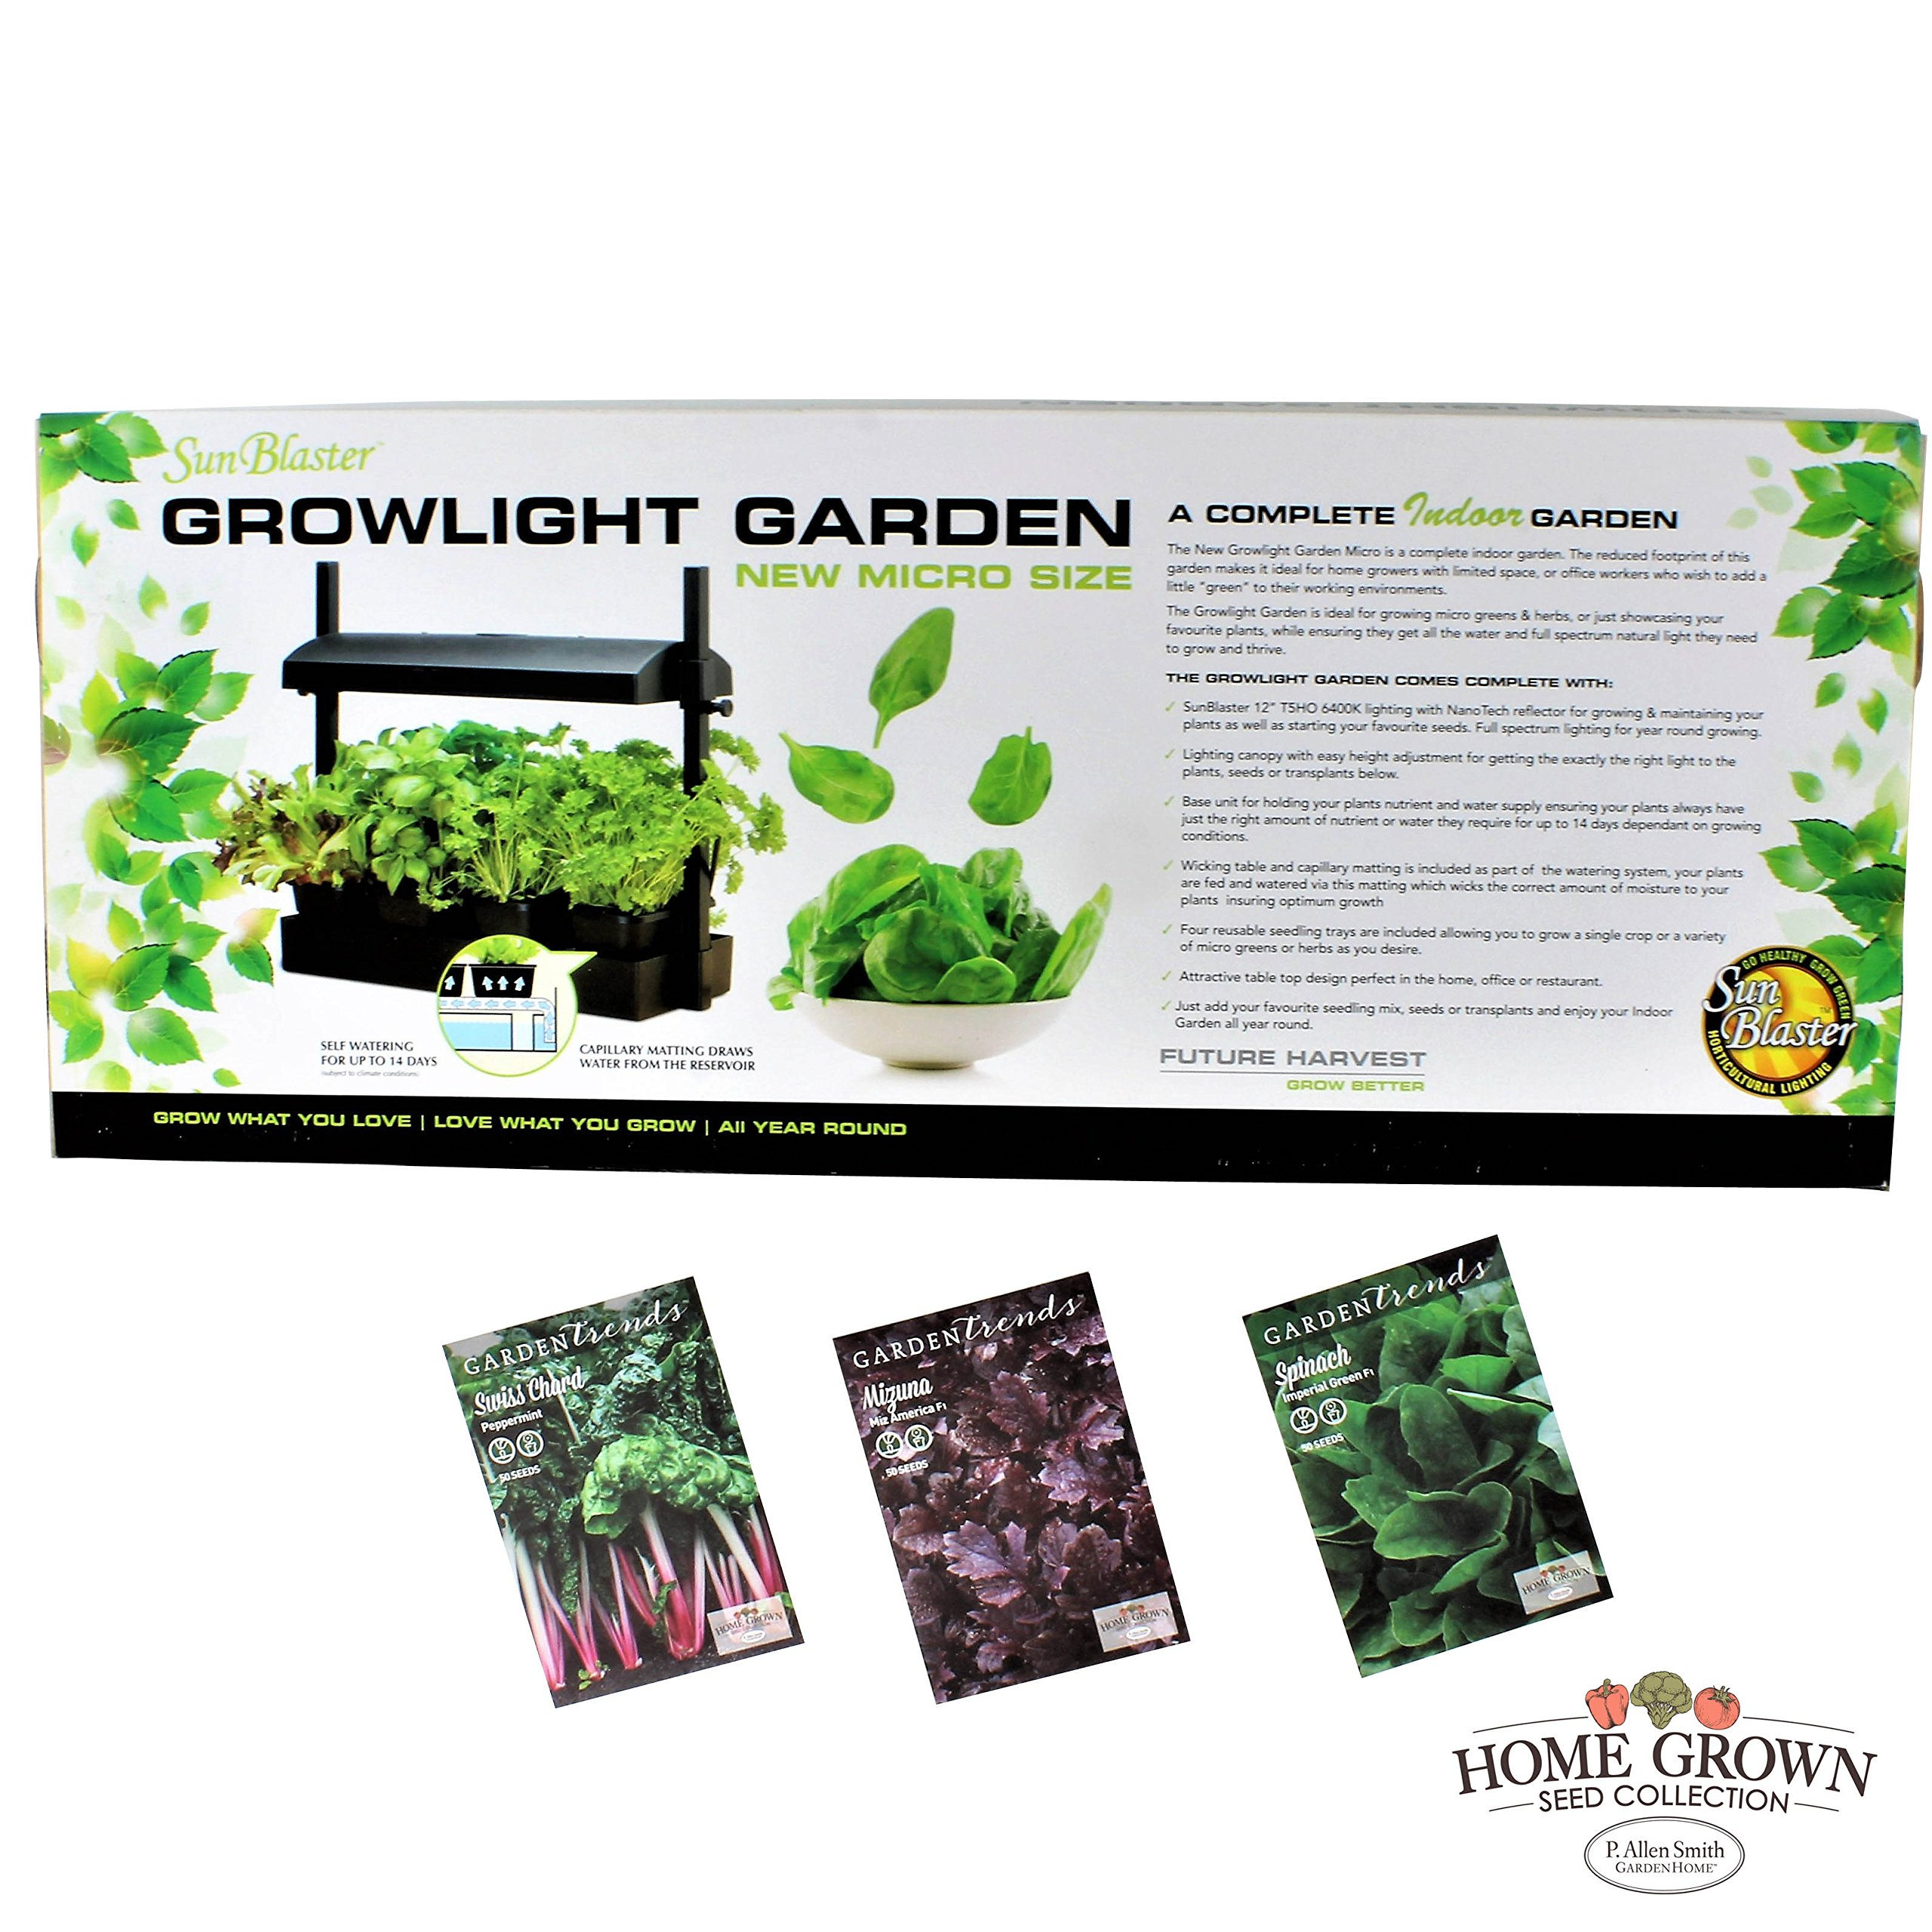 P. Allen Smith Indoor Greens Gardening Collection - Seeds and a Sunblaster Micro Grow Light Garden by GardenTrends